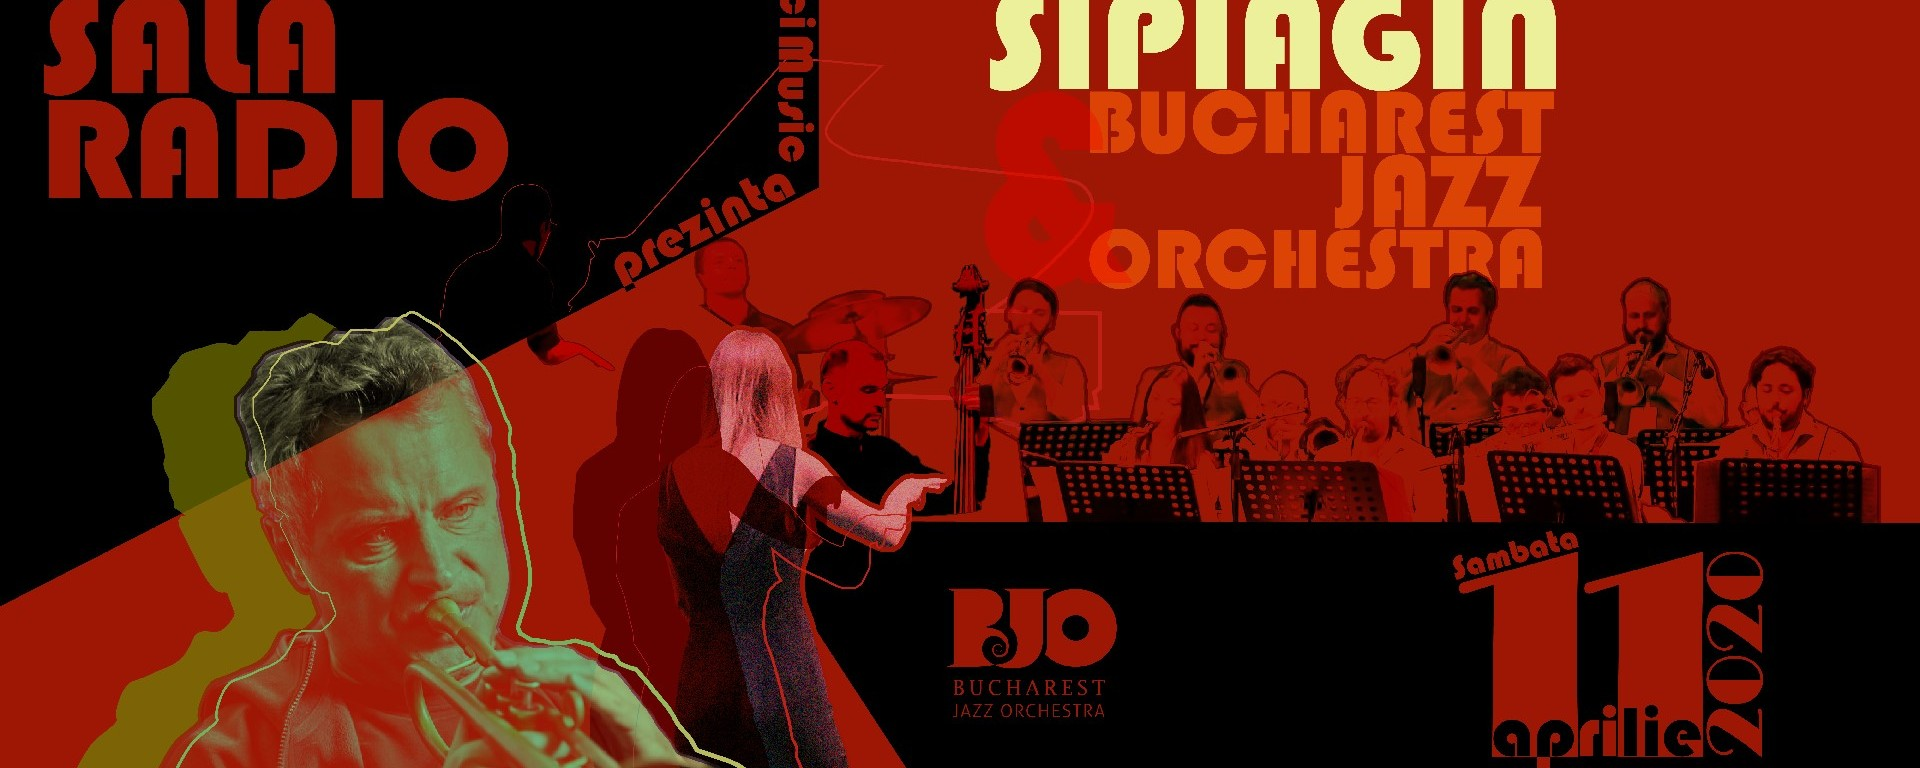 Alex Sipiagin & Bucharest Jazz Orchestra - Live la Sala Radio